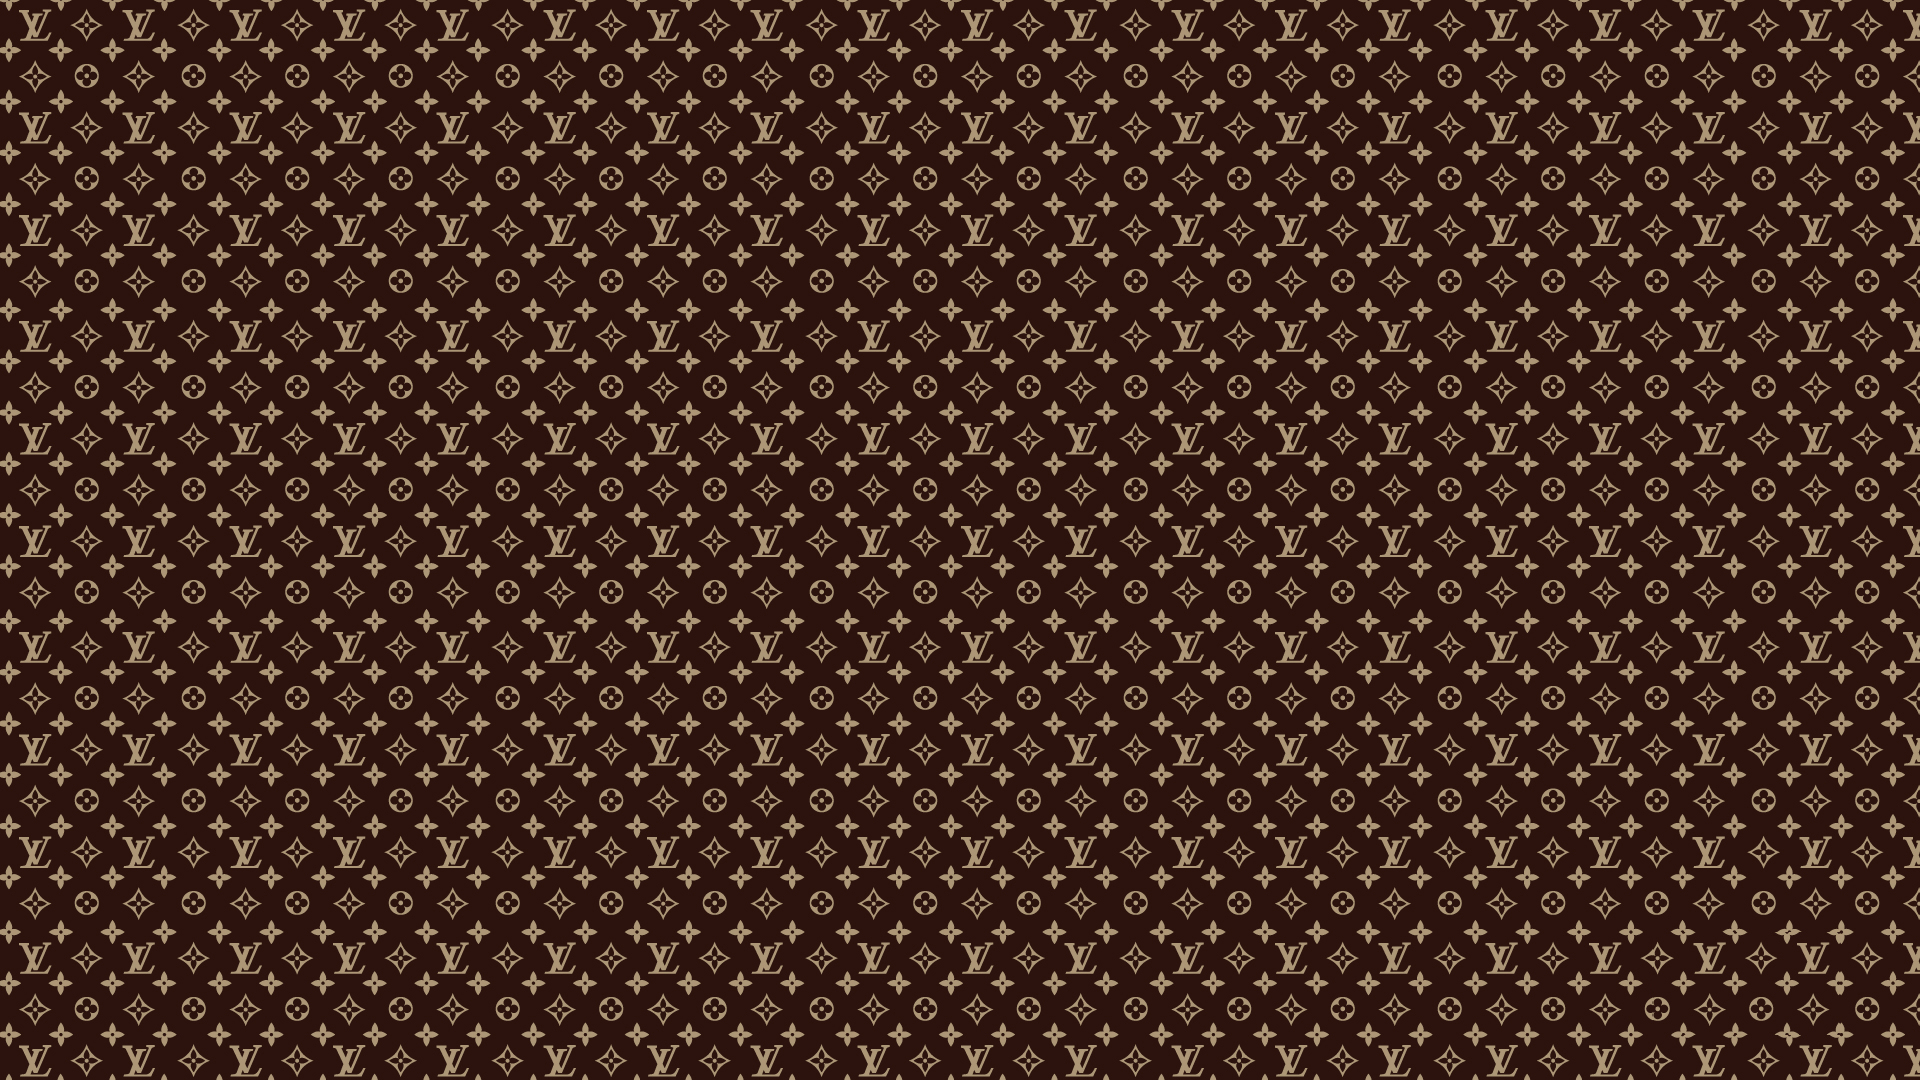 Louis vuitton wallpaper desktop download wallpaper download voltagebd Choice Image